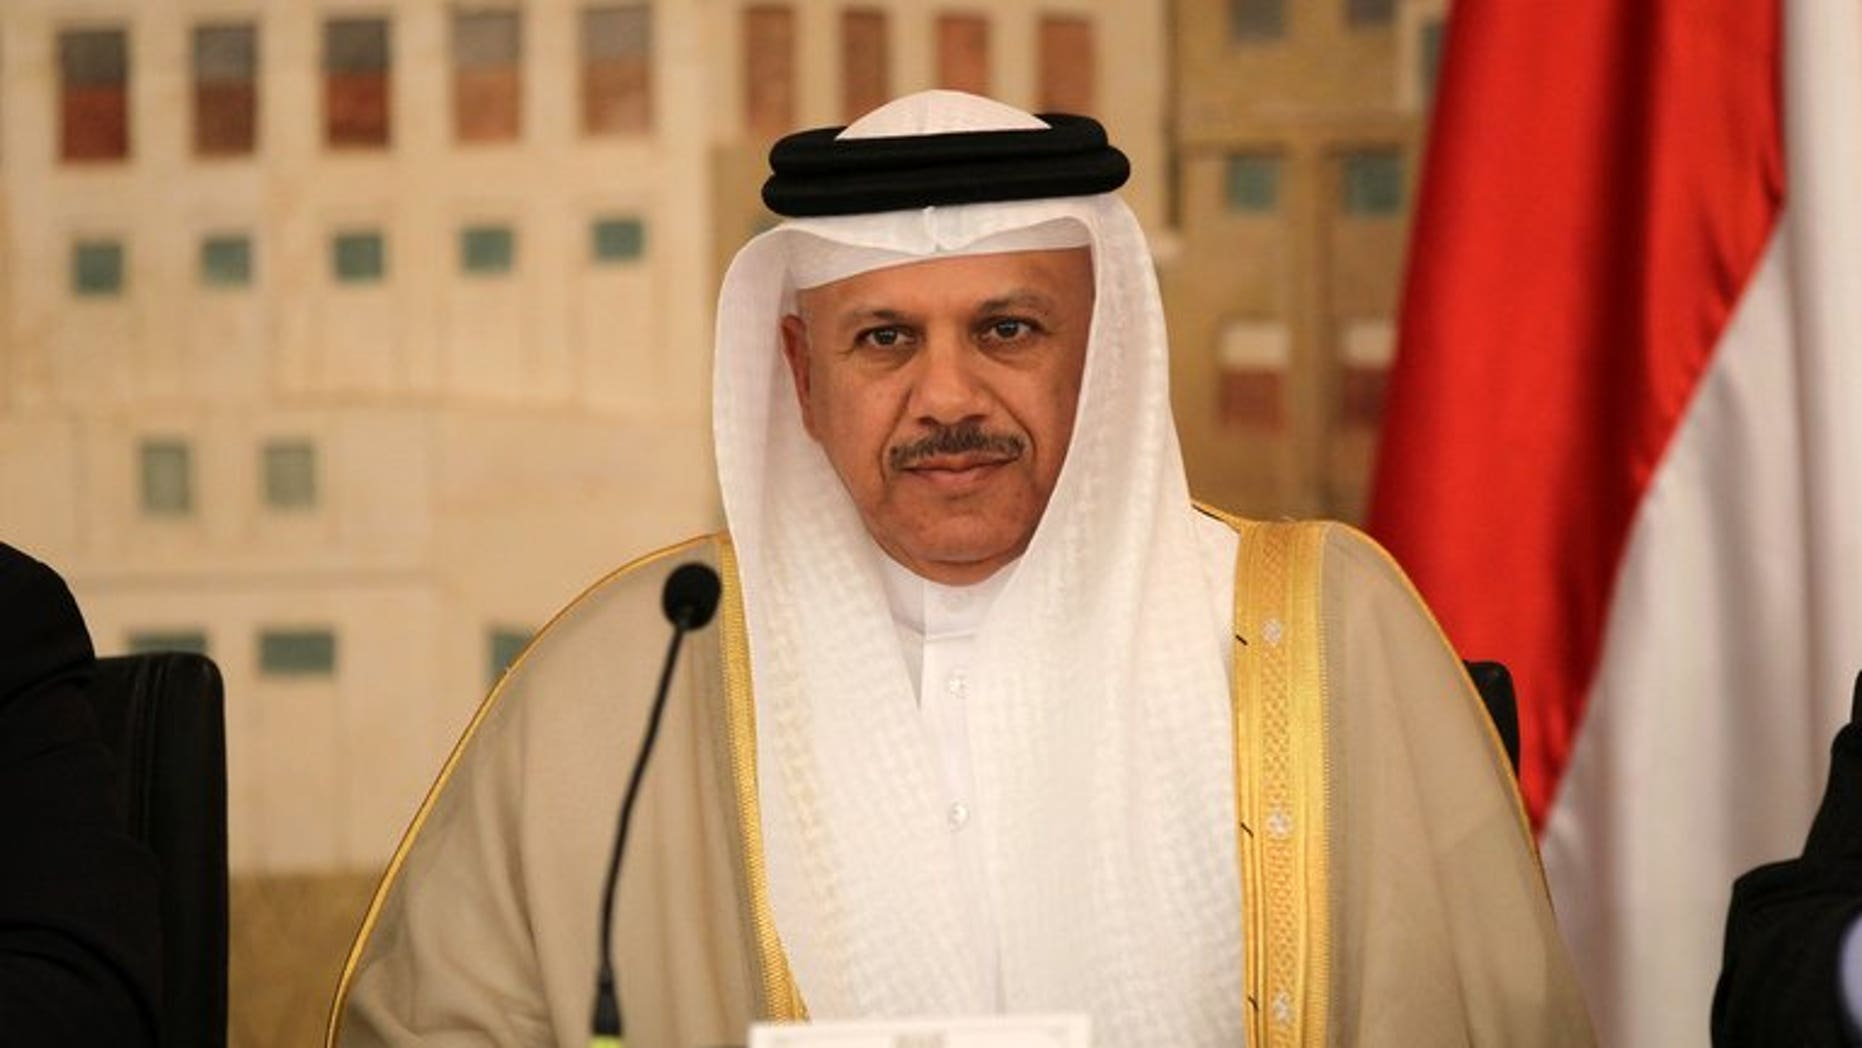 Secretary General of the Gulf Cooperation Council (GCC), Abdullatif al-Zayani, pictured during a meeting in the Yemeni capital Sanaa, on January 27, 2013. GCC has criticised Lebanon's Hezbollah chief Hassan Nasrallah for threatening to send more fighters to neighbouring Syria after a car bomb hit his Shiite party's stronghold.